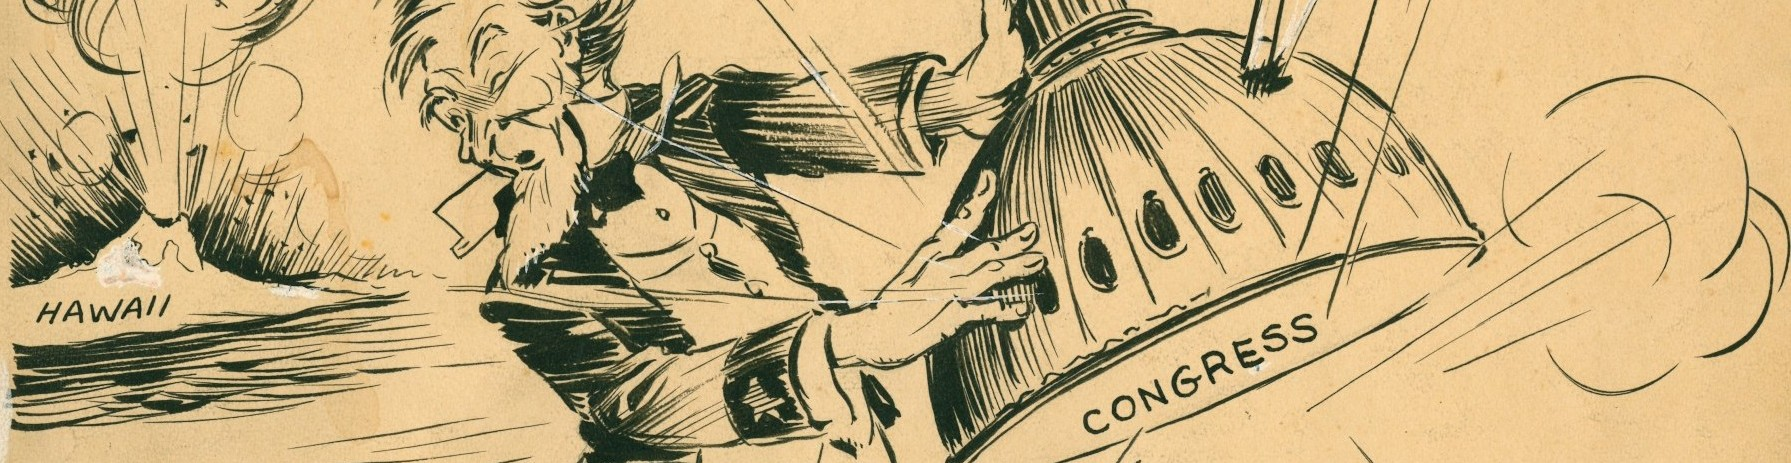 Political cartoons and other campaign art on display at Willamette Heritage Center special exhibit The Art of Politics